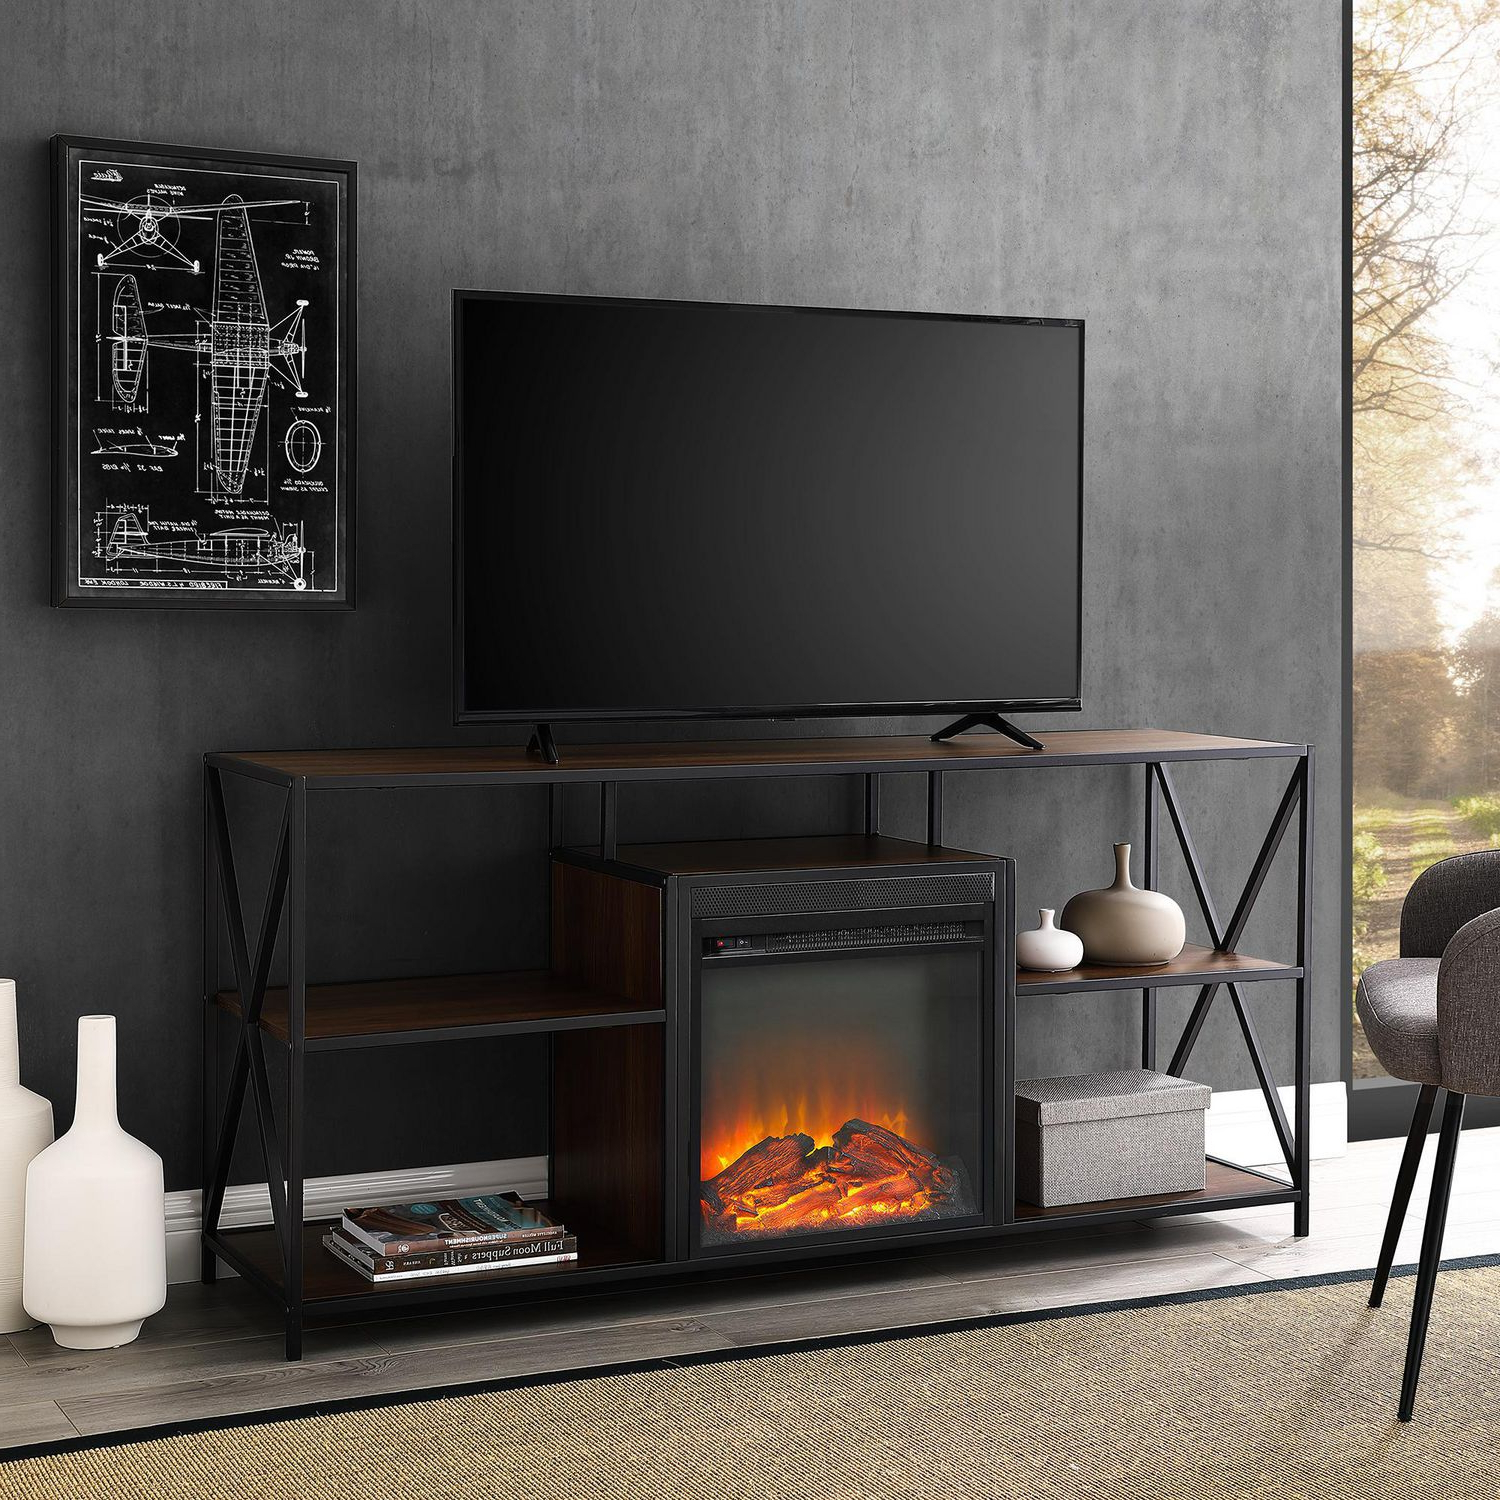 Manor Park Modern Industrial Fireplace Tv Stand For Tv's In Tv Stands With Led Lights In Multiple Finishes (View 15 of 20)